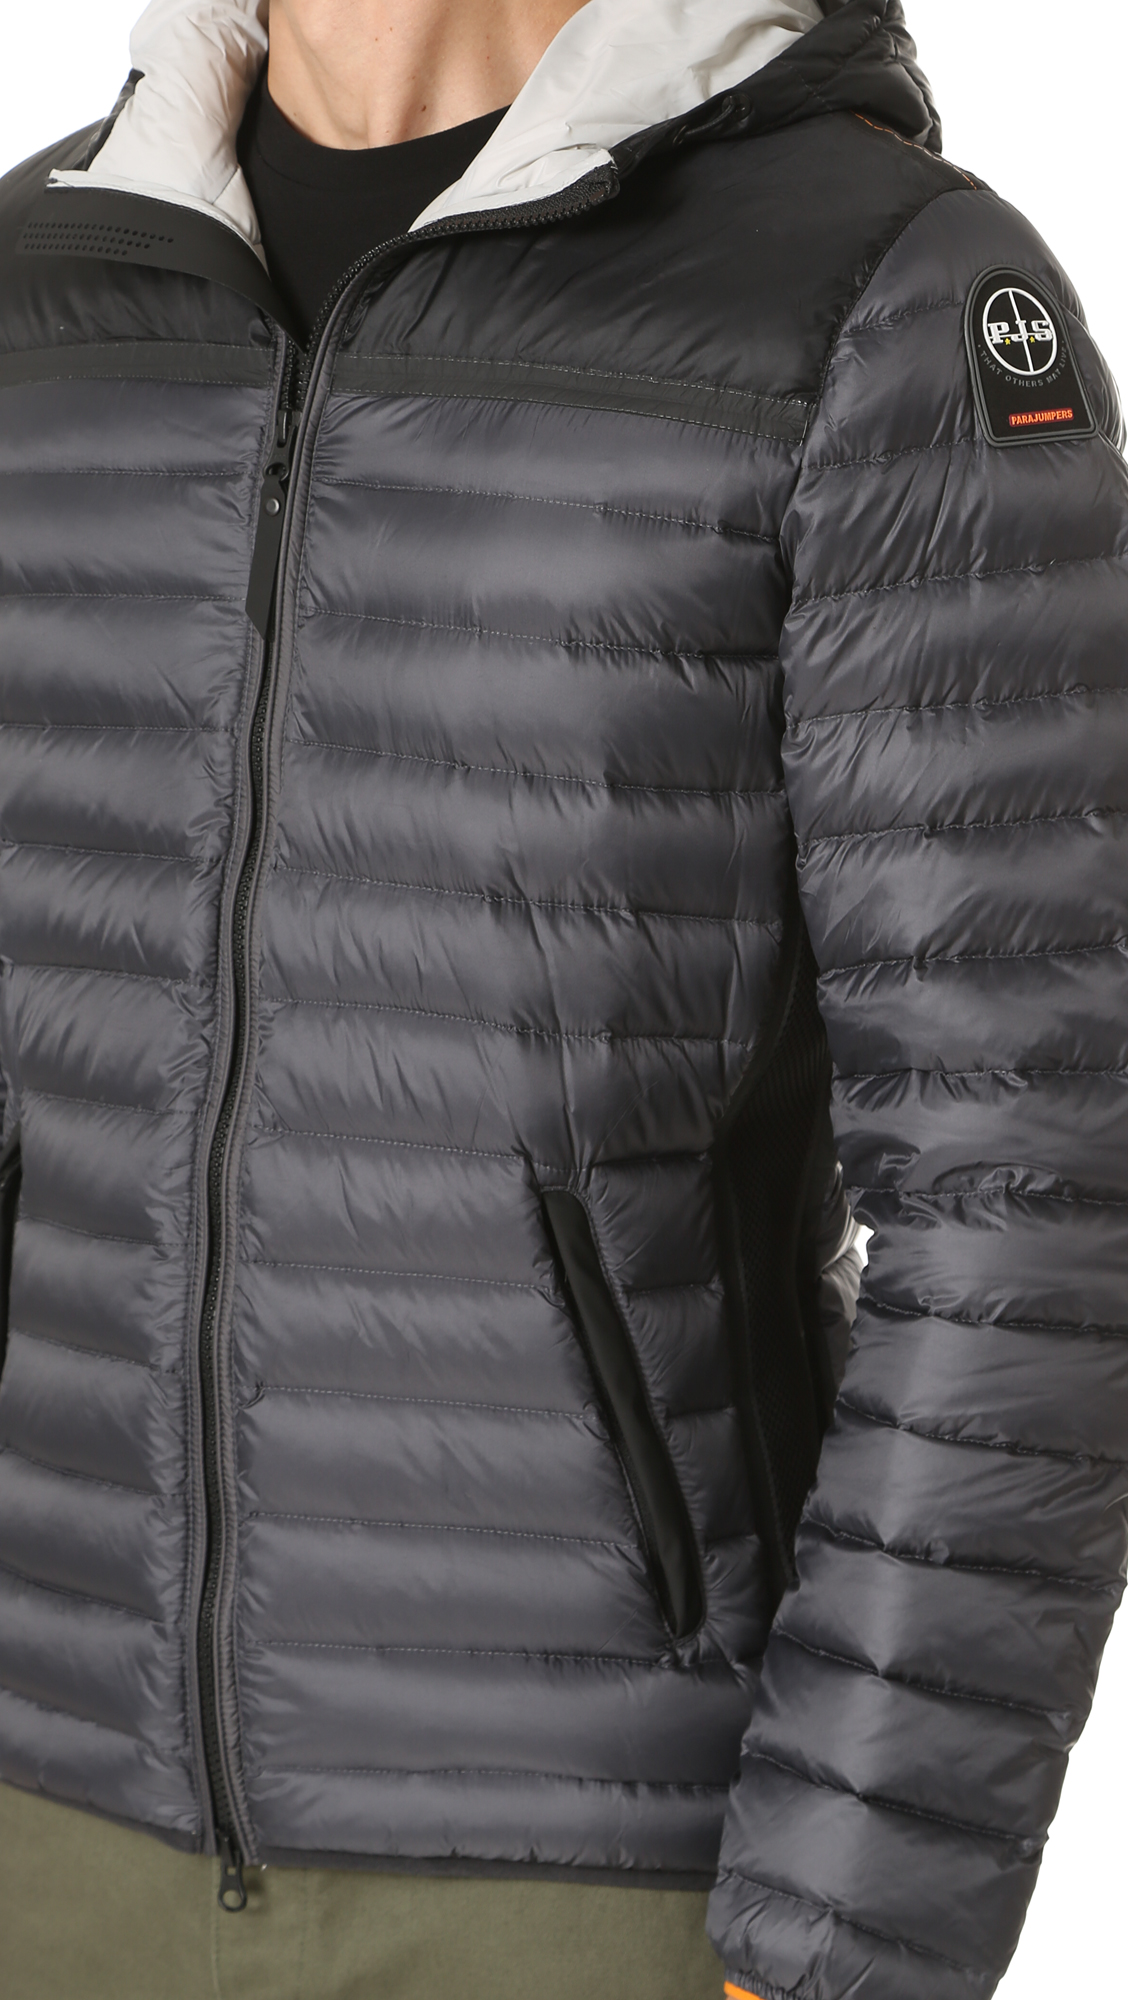 parajumpers arthur duvet jacket; parajumpers hae hooded jacket east dane use code ednc18 for 15 off